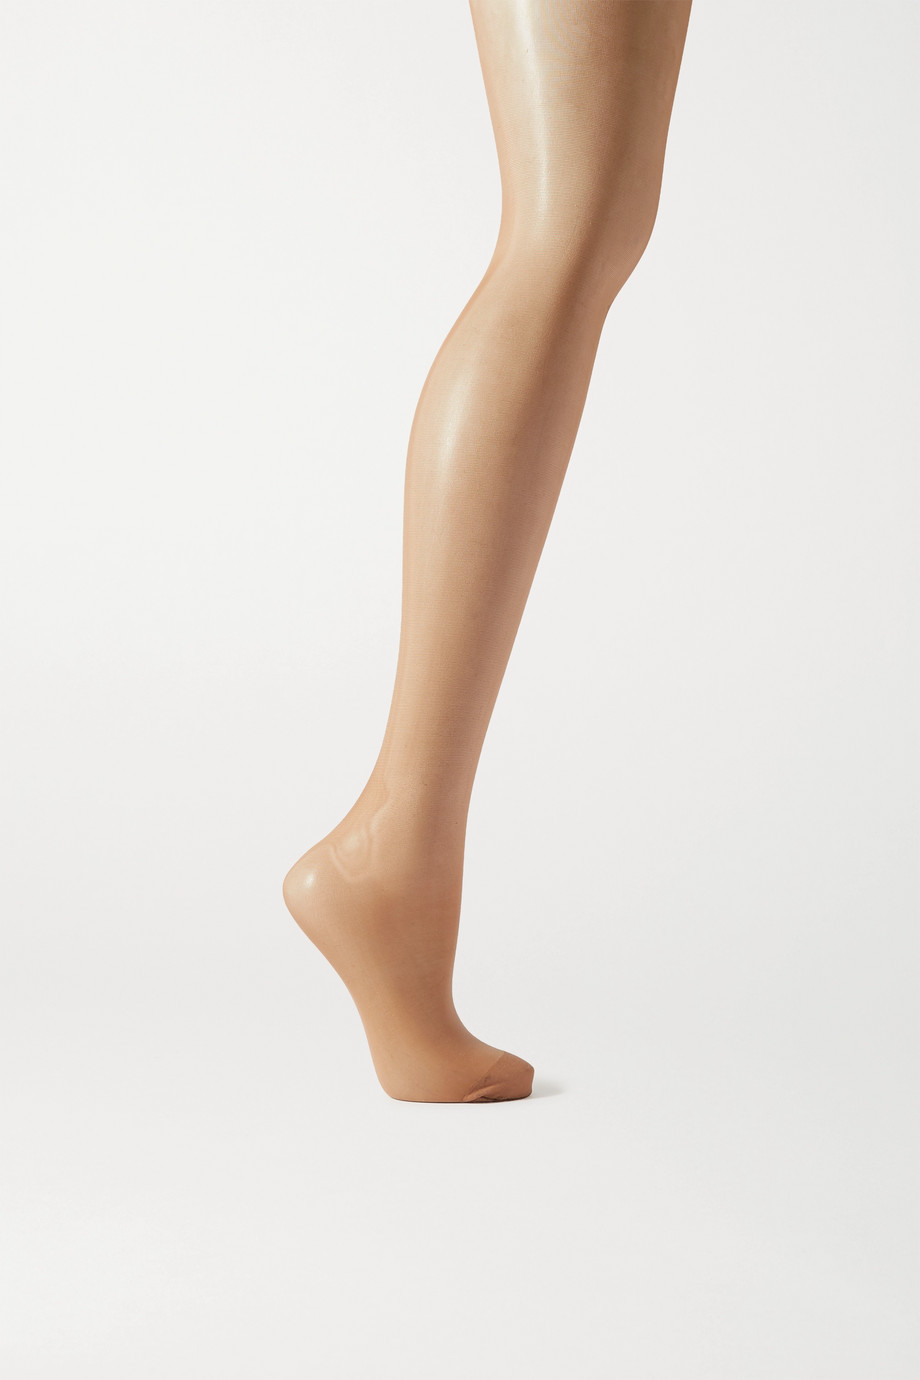 Wolford Synergy Push-Up Kompressionsstrumpfhose 20 den